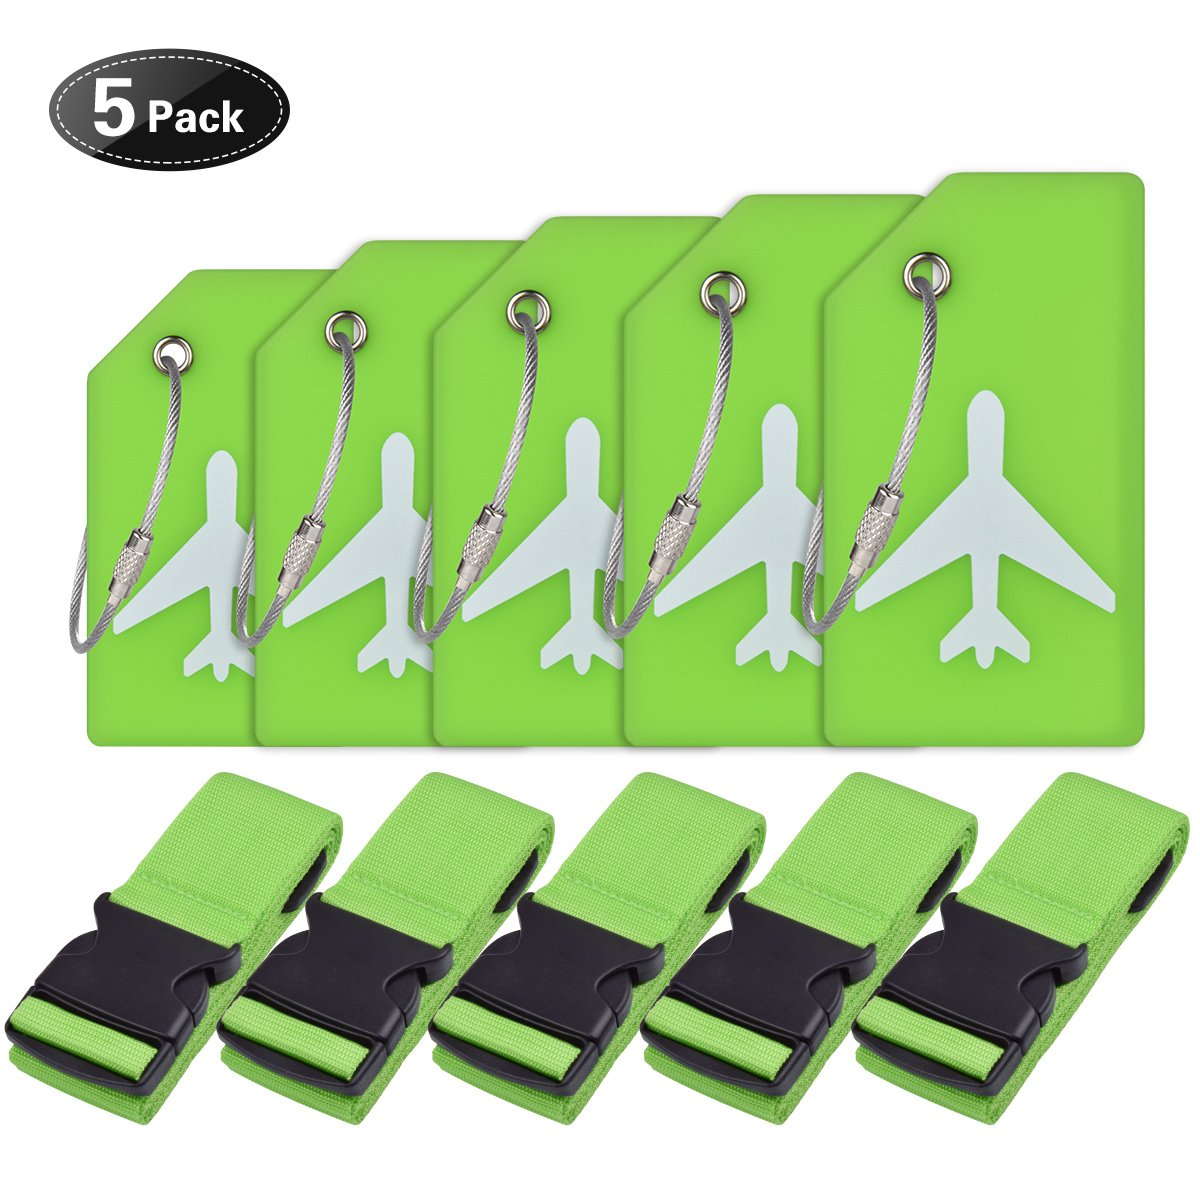 Luggage Accessories-Luggage Straps/Luggage Tags By Ovener (Green 5 Set)